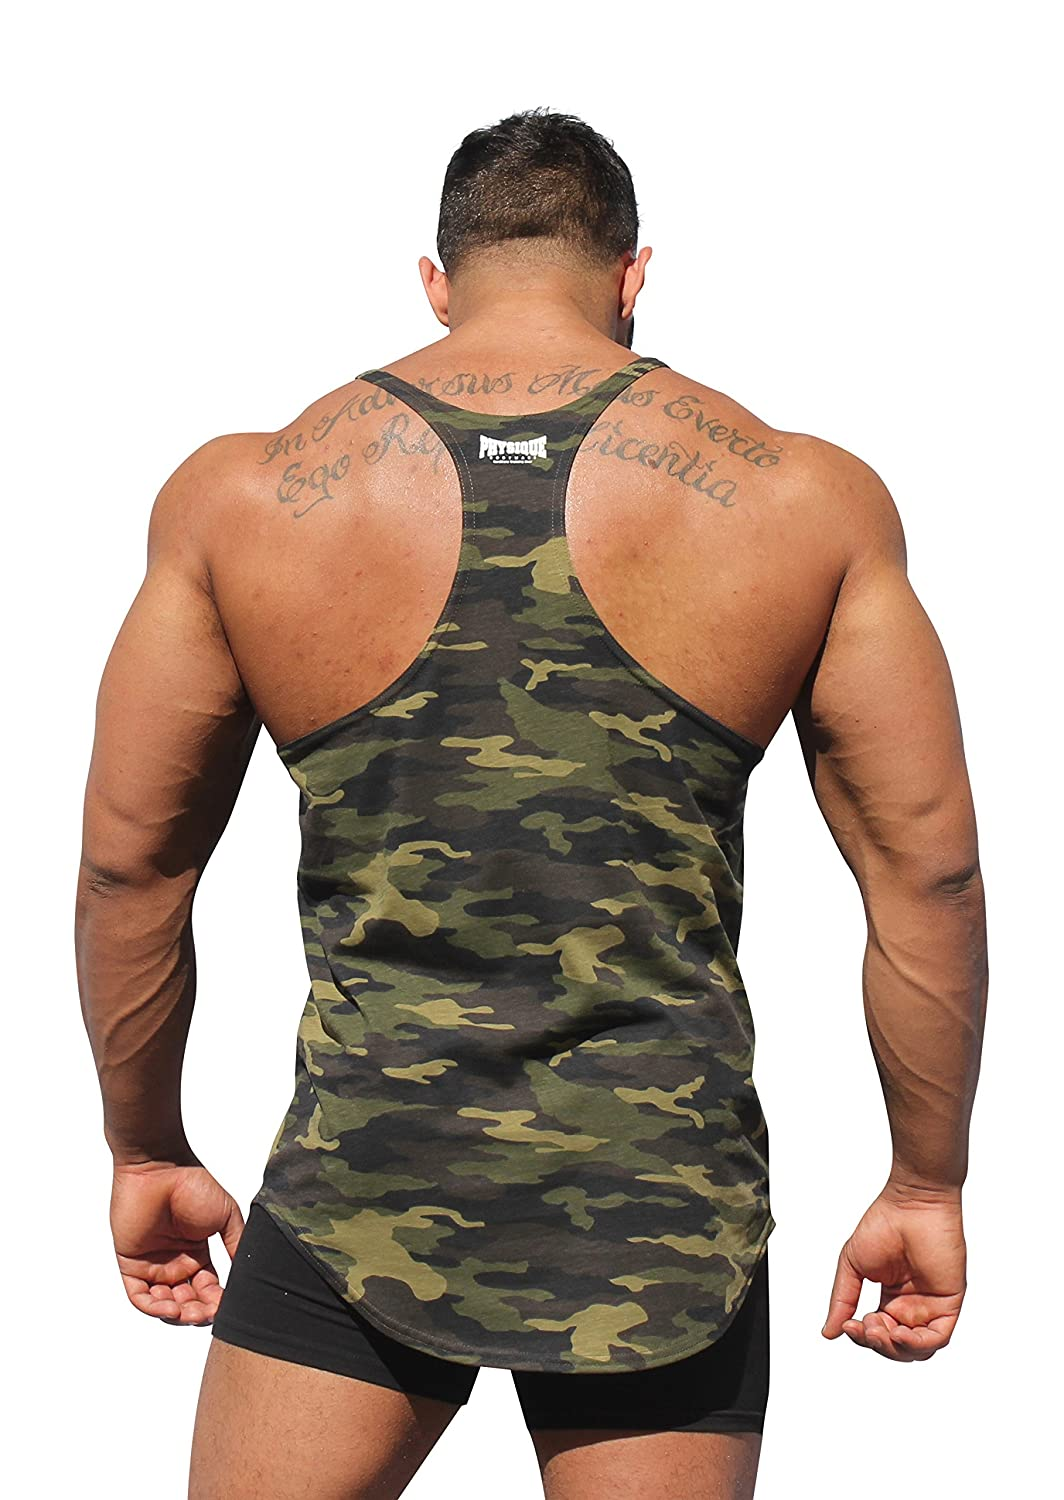 e12b8bd5253b6 Amazon.com  Physique Bodyware One More Rep Camouflage Men s Y-Back Stringer  Tank Top. Made In America (Small